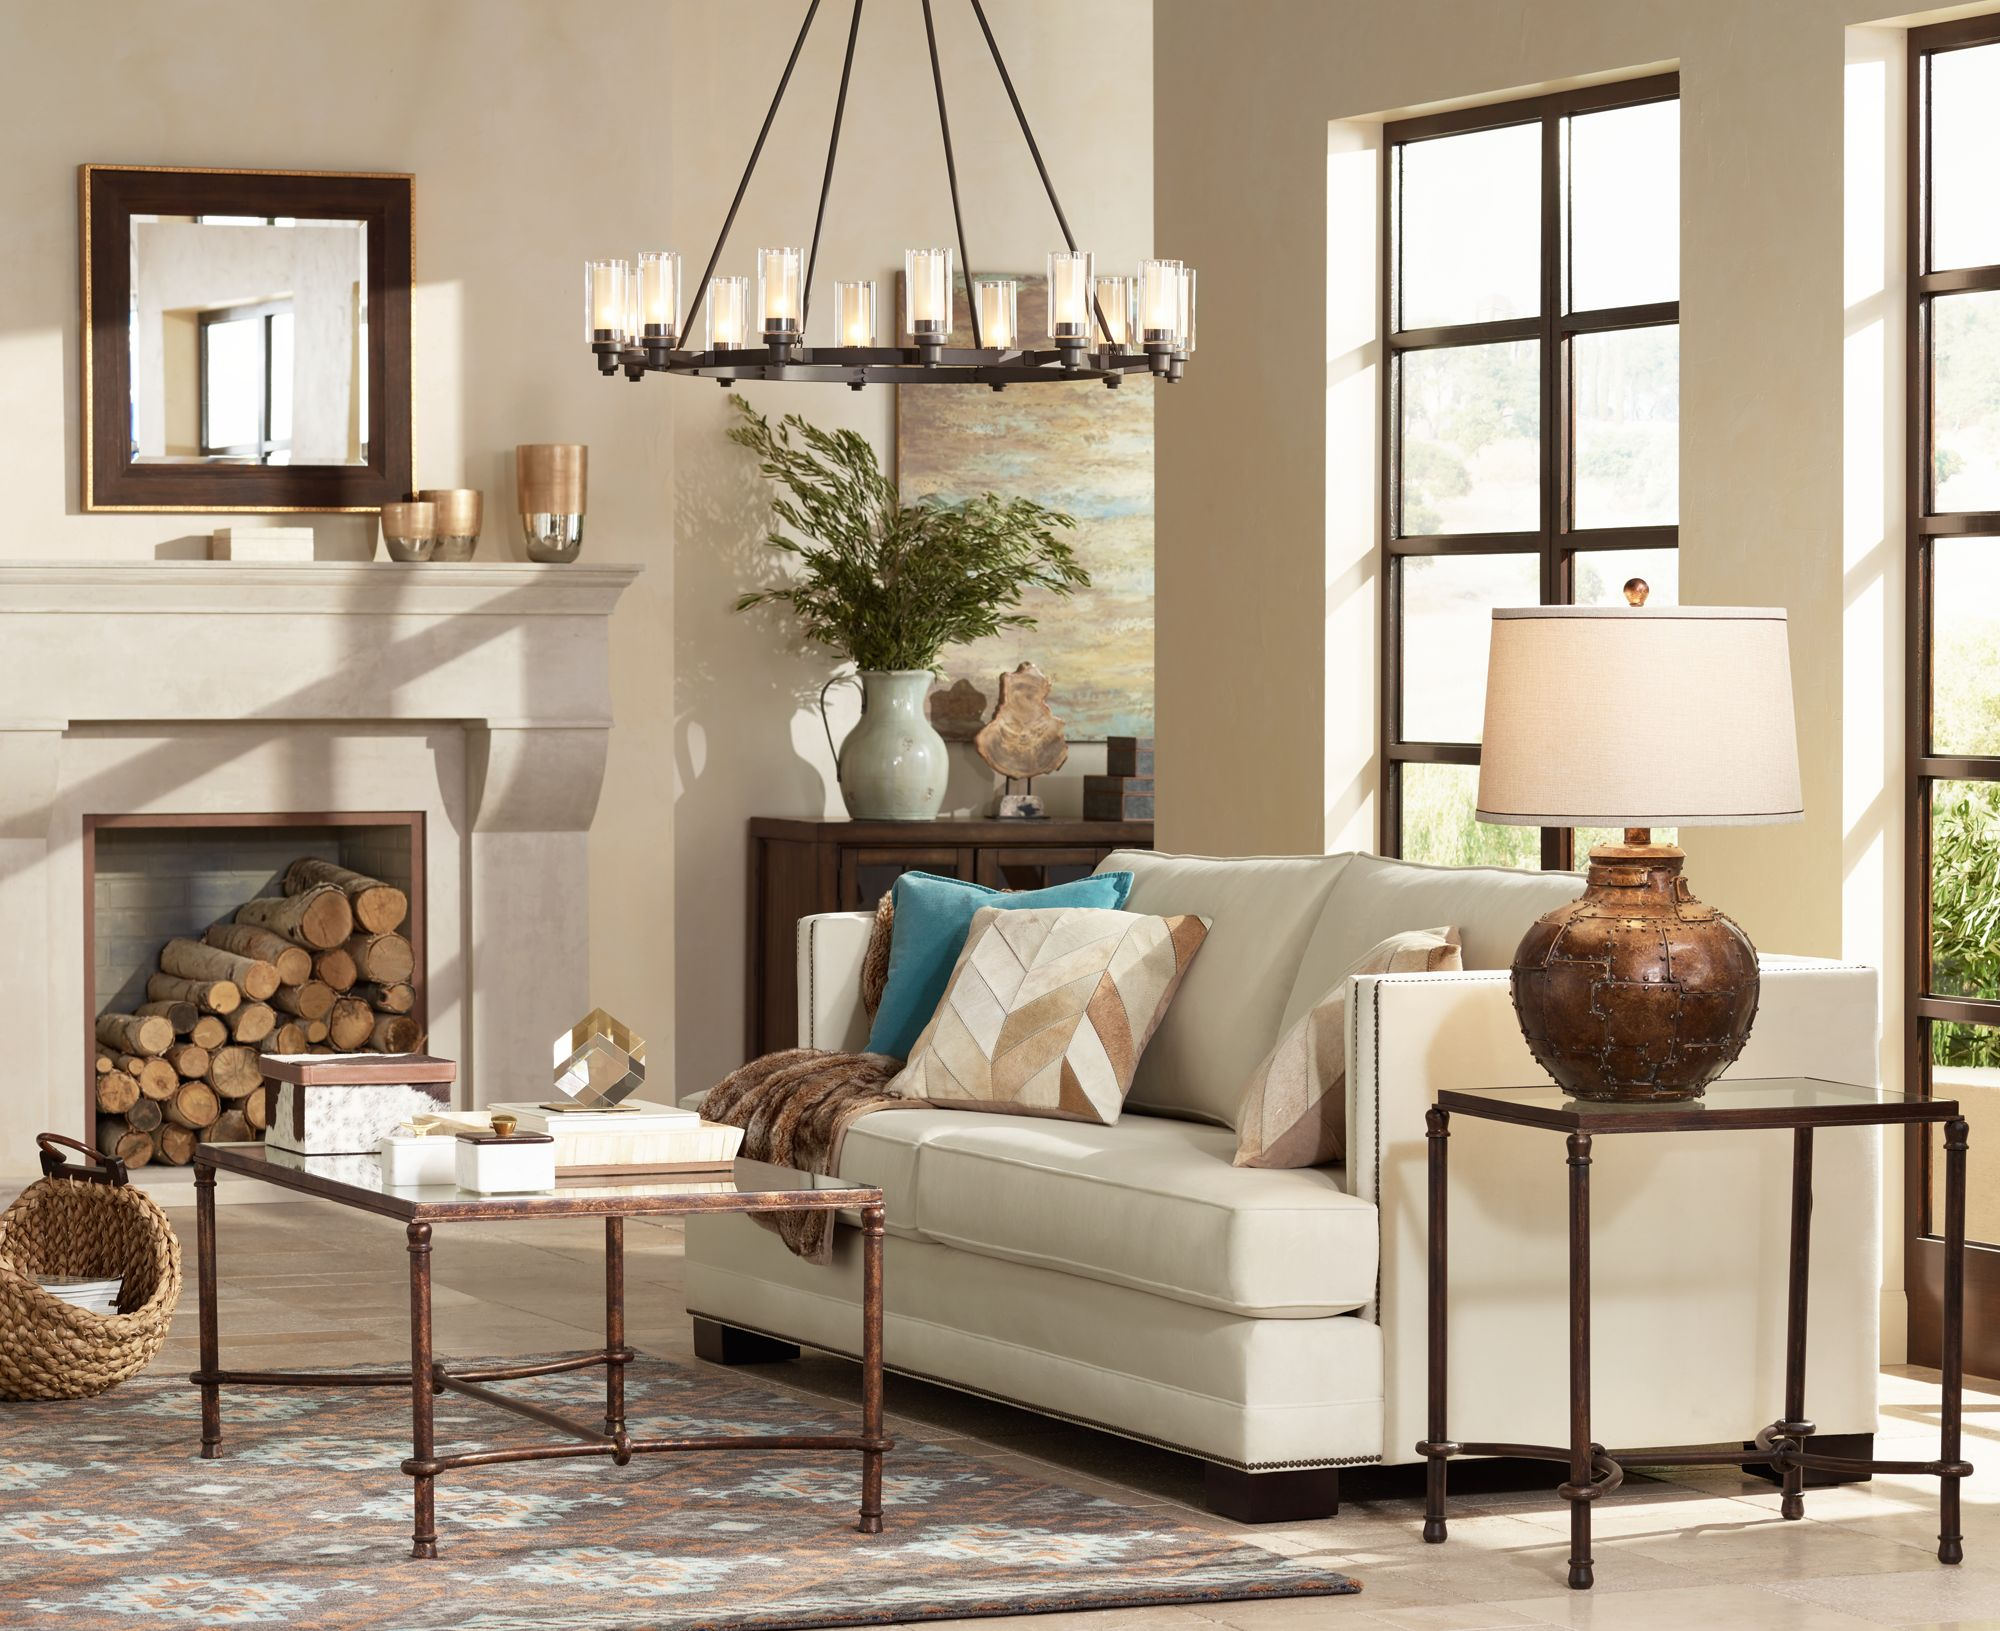 Perfect A Large Chandelier Anchors A Cozy Living Room With Rustic Touches.